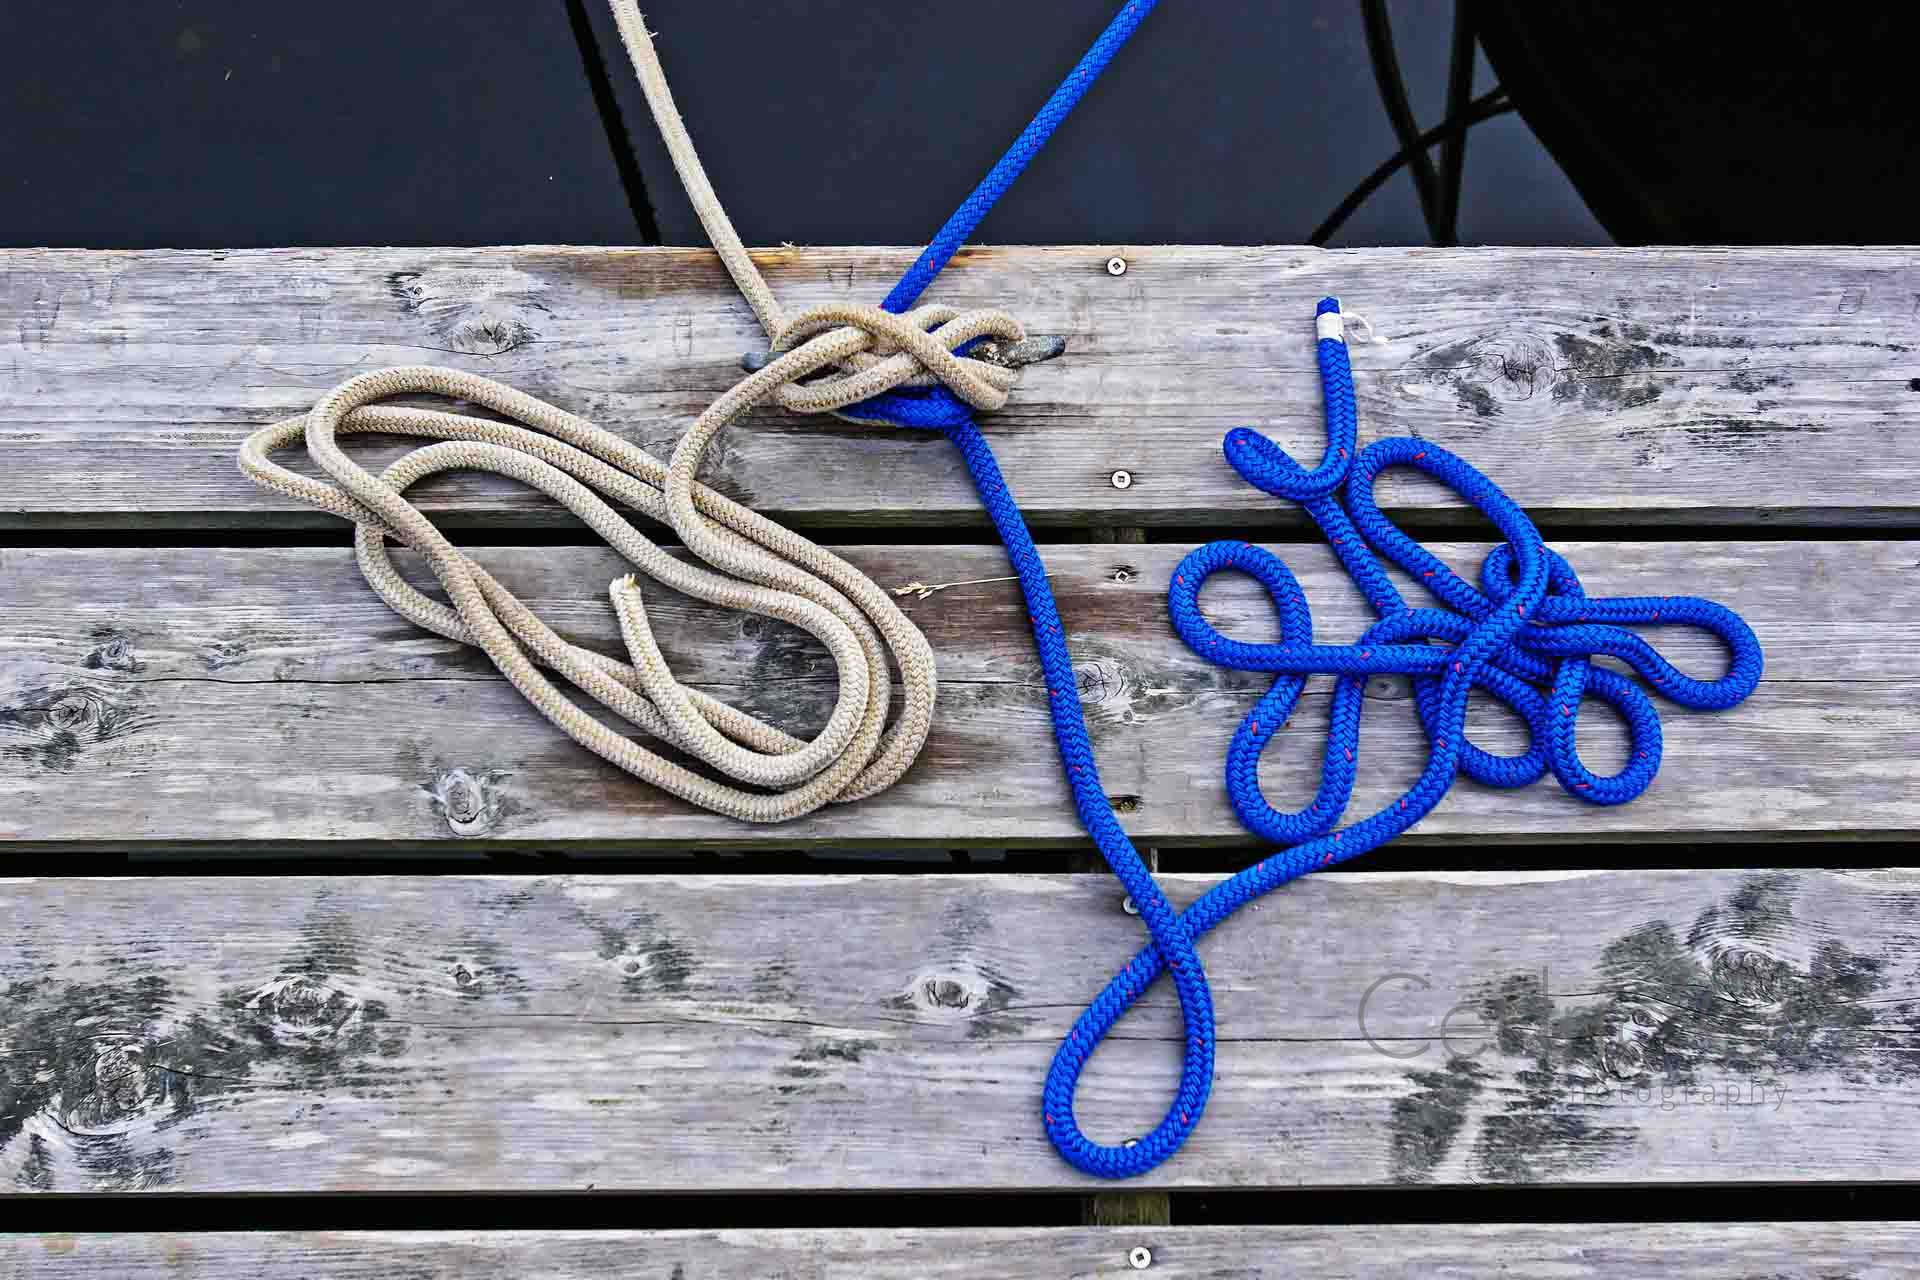 Ropes on the dock